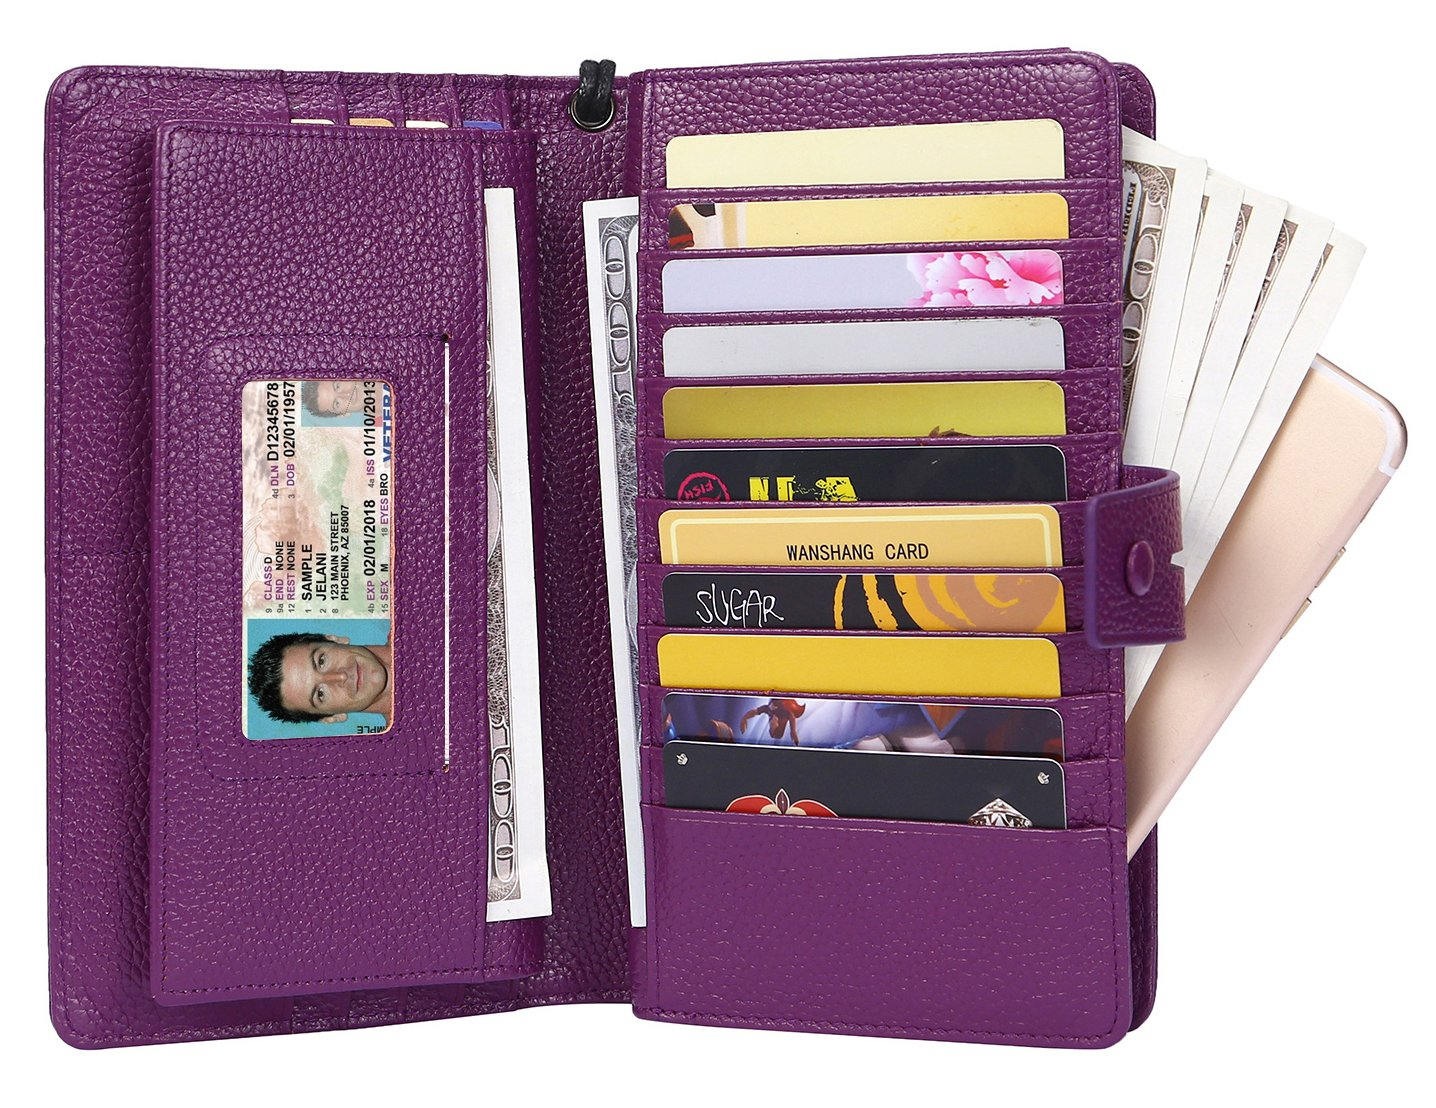 AINIMOER Women's Big RFID Blocking Leather Zip Around Wallets for Womens Clutch Organizer Checkbook Holder Large Travel Purse(Lichee Purple) by AINIMOER (Image #4)